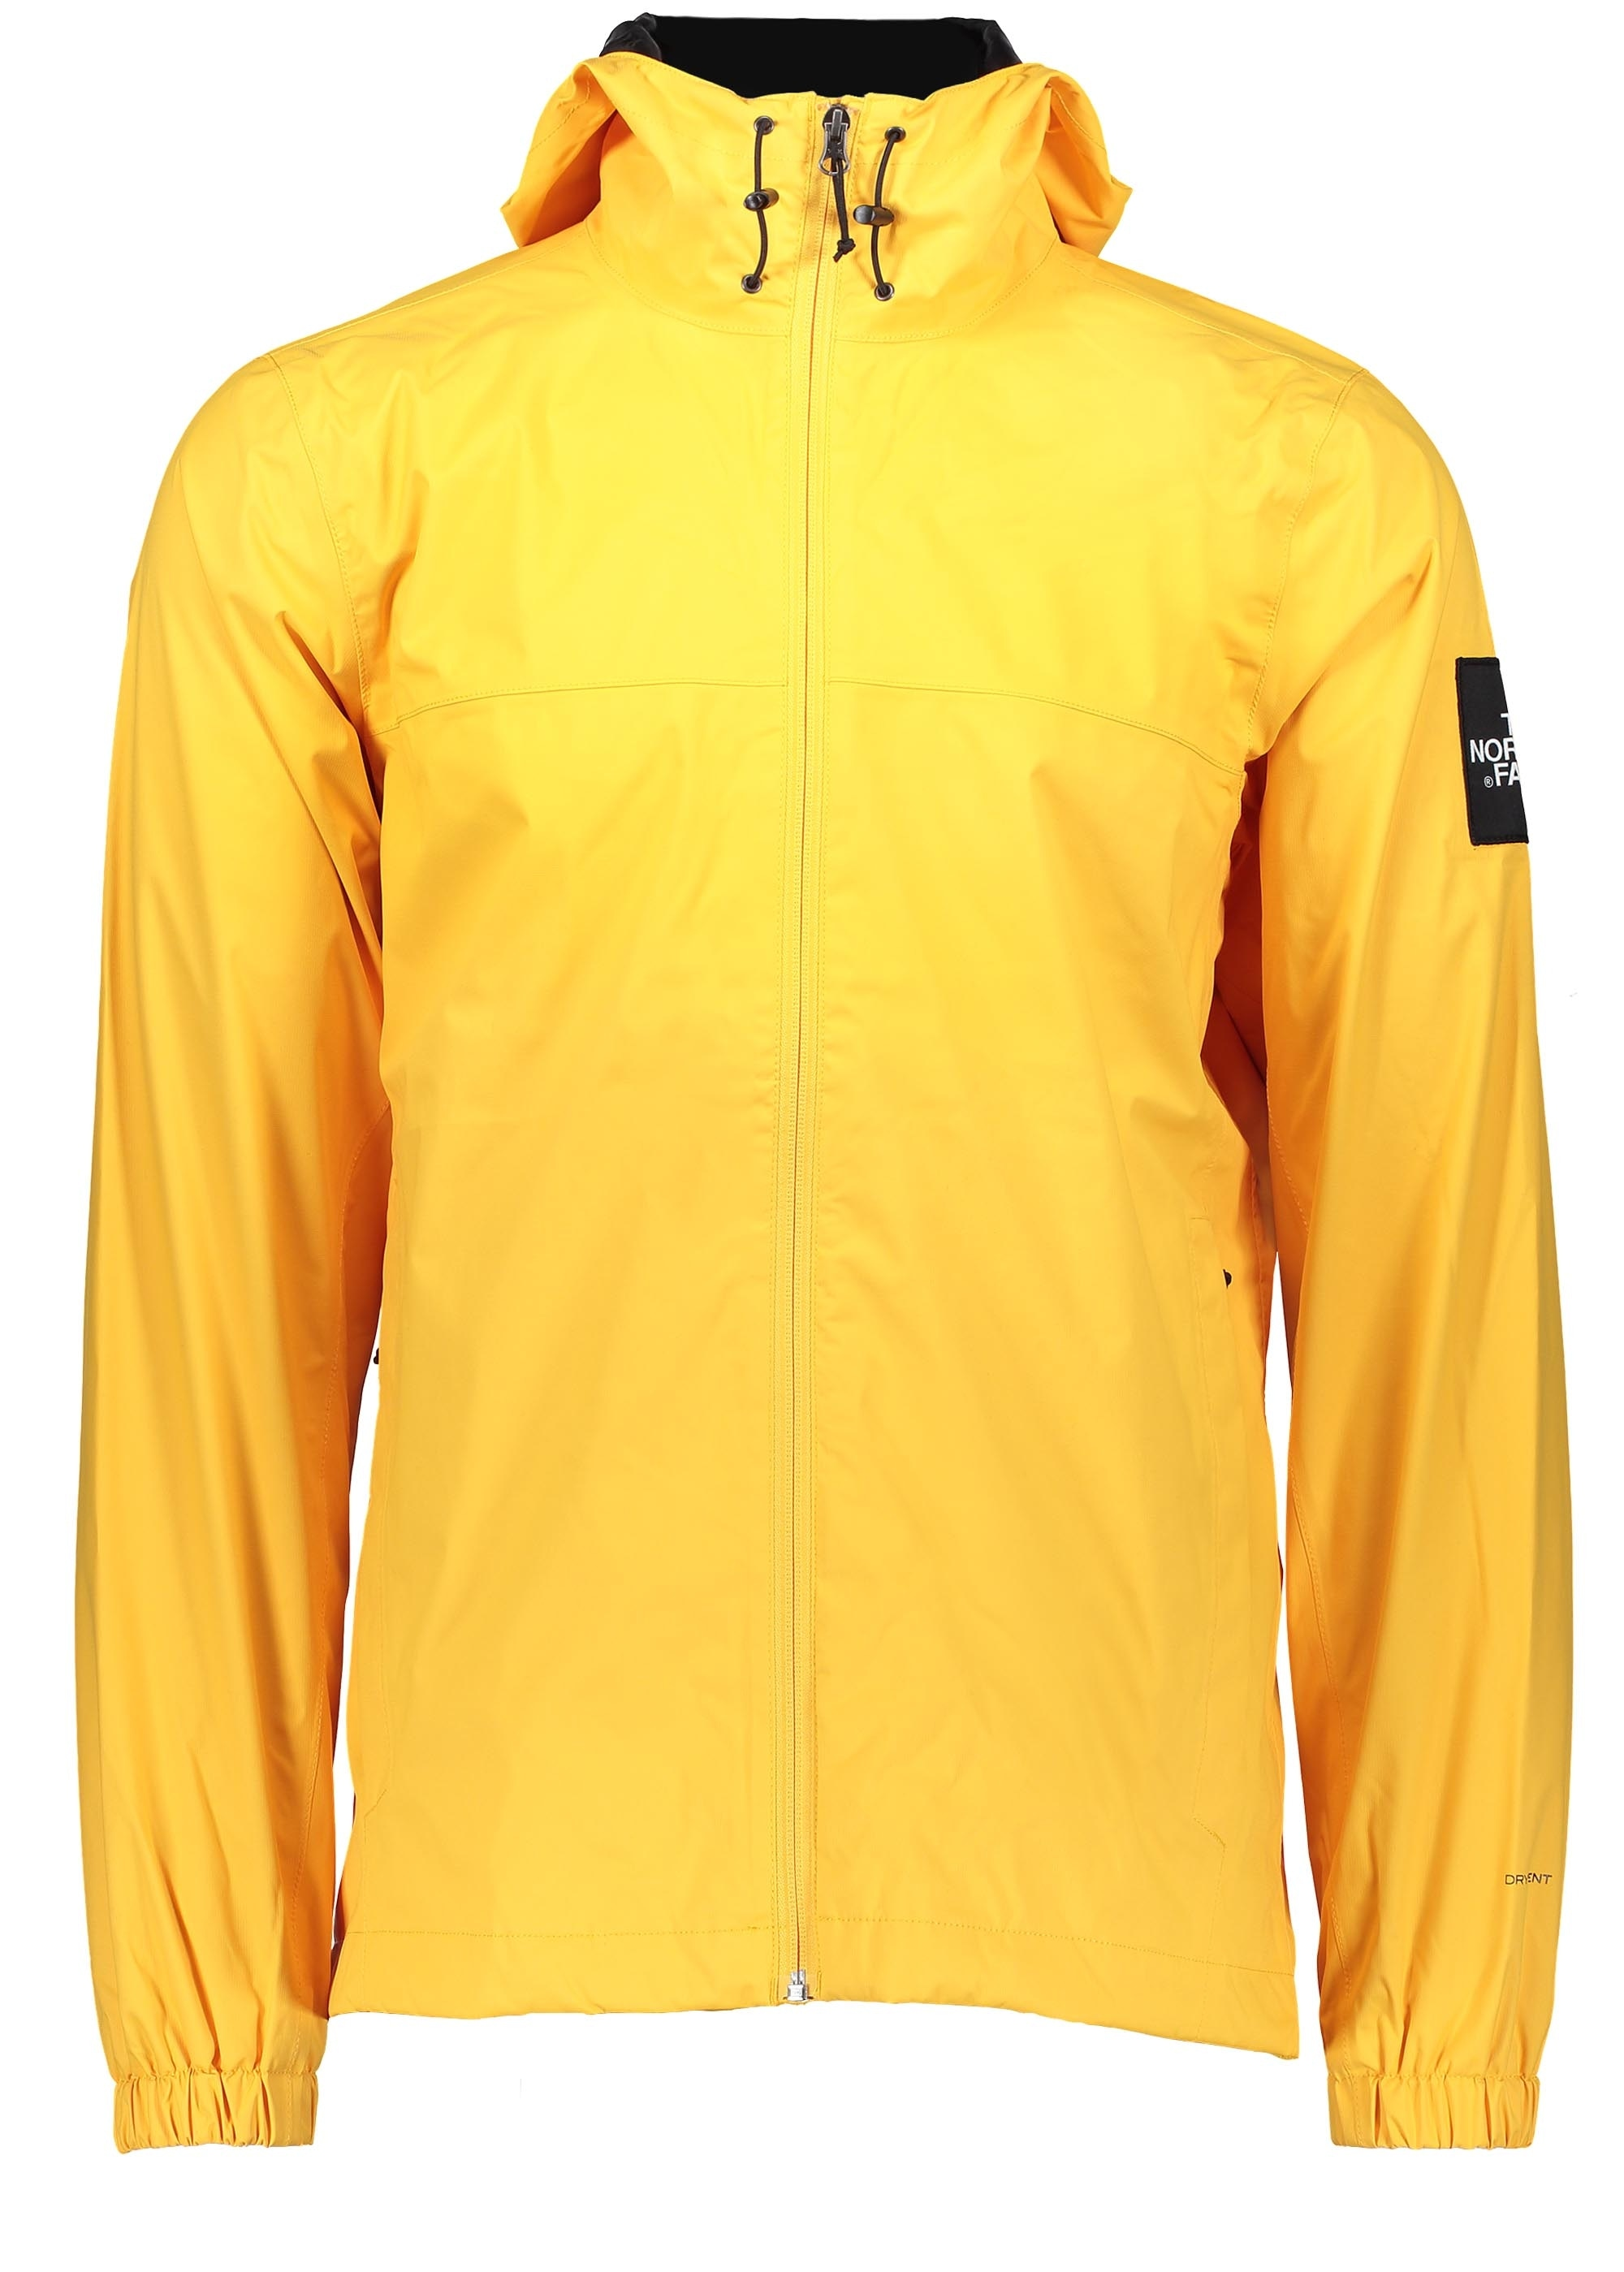 north face yellow